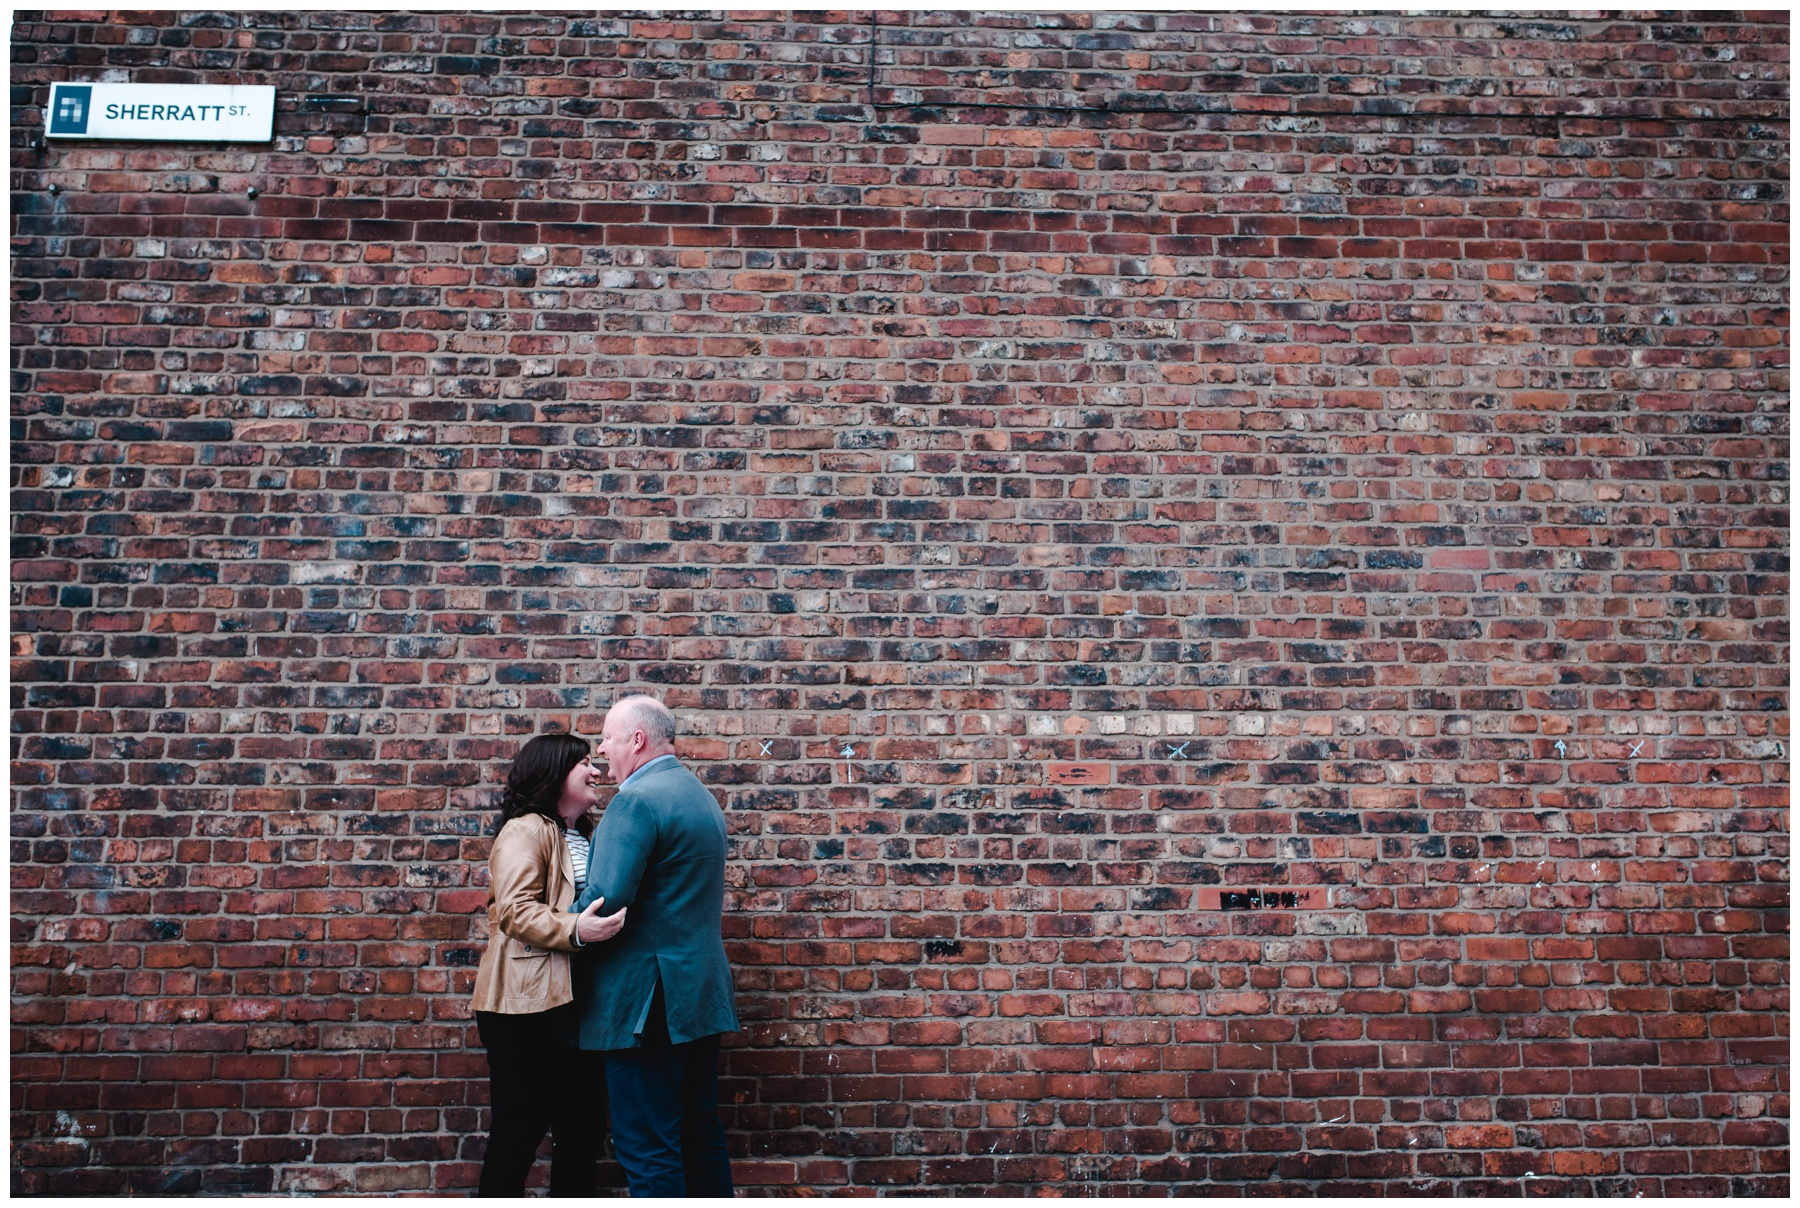 Carl and Allison in front of brick wall laughing in Northern Quarter in Manchester